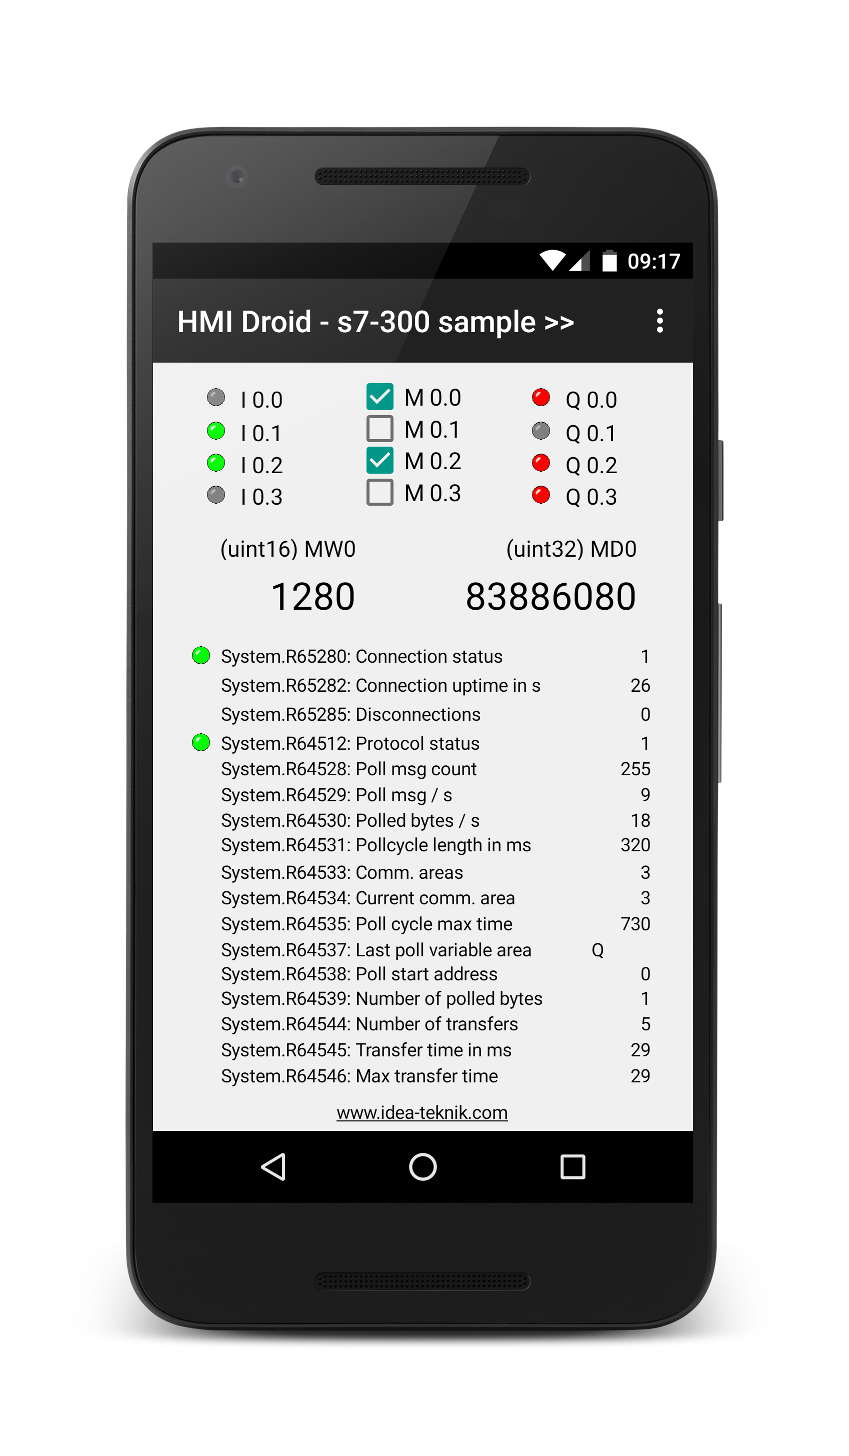 HMI Droid - Siemens S7-300 sample